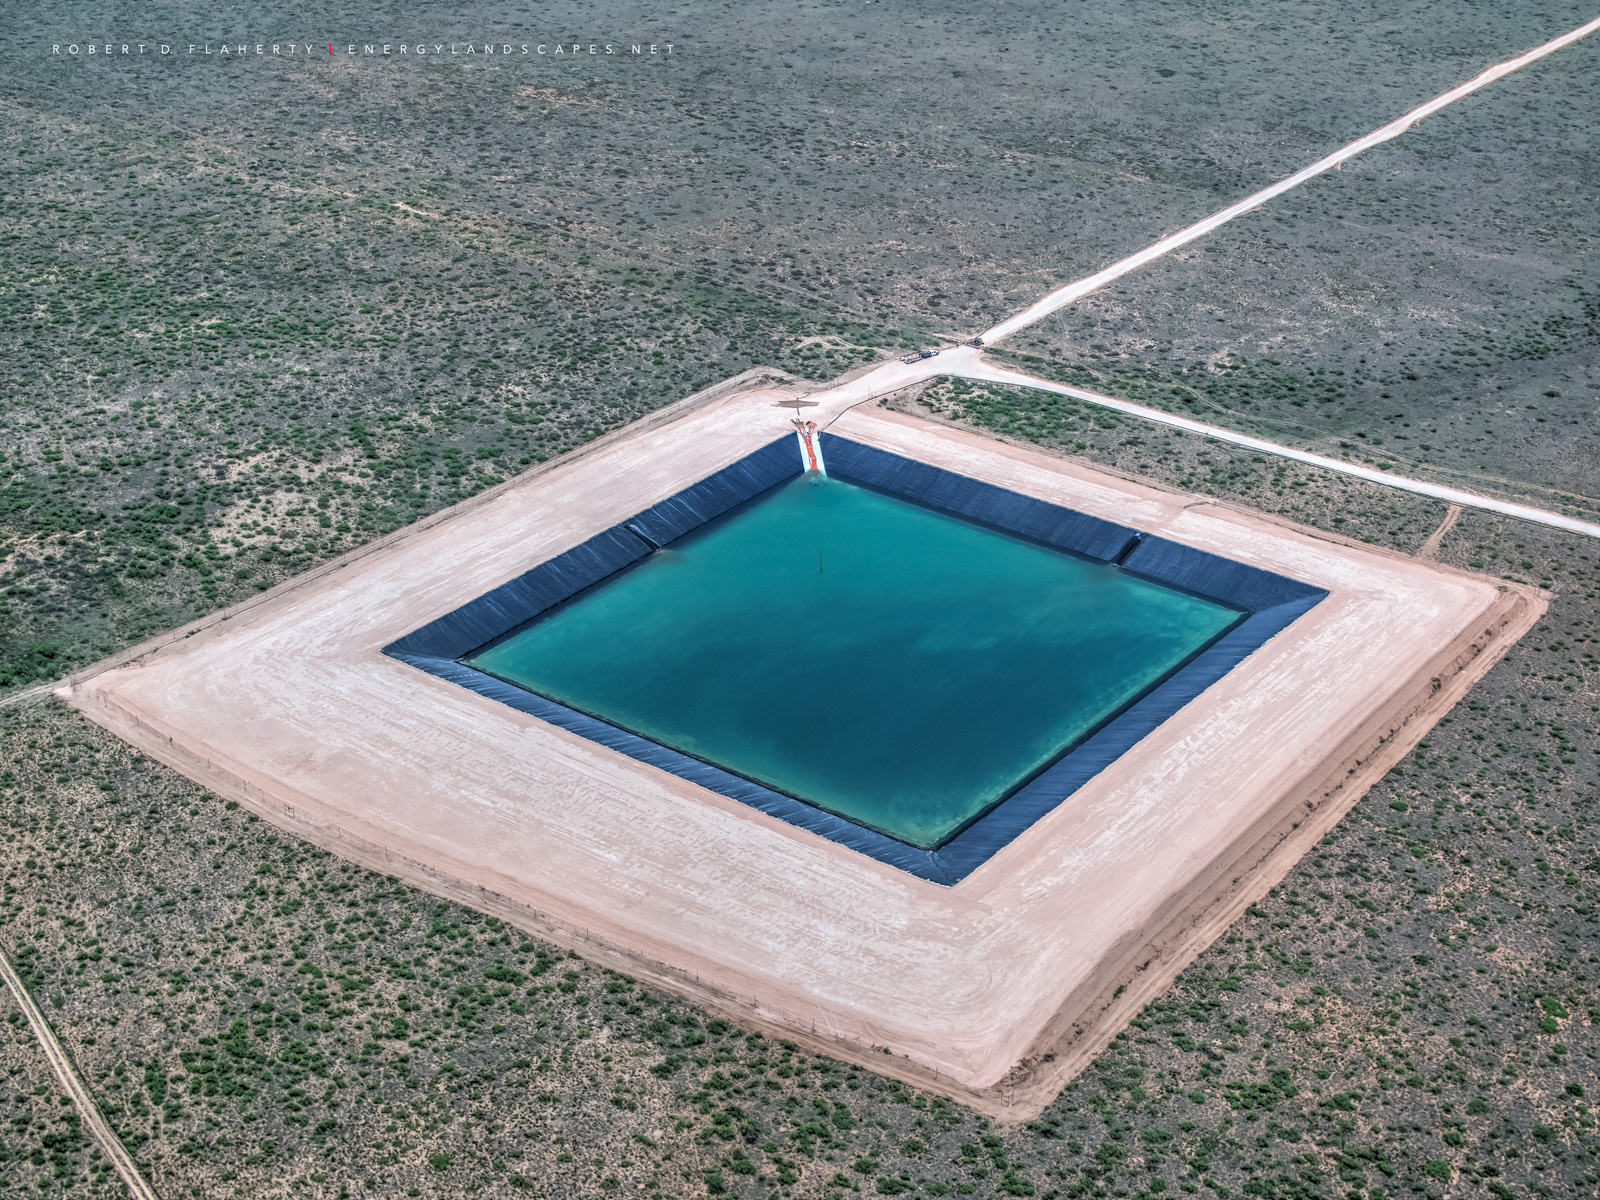 frac, frac impoundment, frac water, oil & water logistics, frac pond, Delaware Basin, Texas, Permian Basin, oil completion, oilfield water, oilfield water recycling, fine art, photo